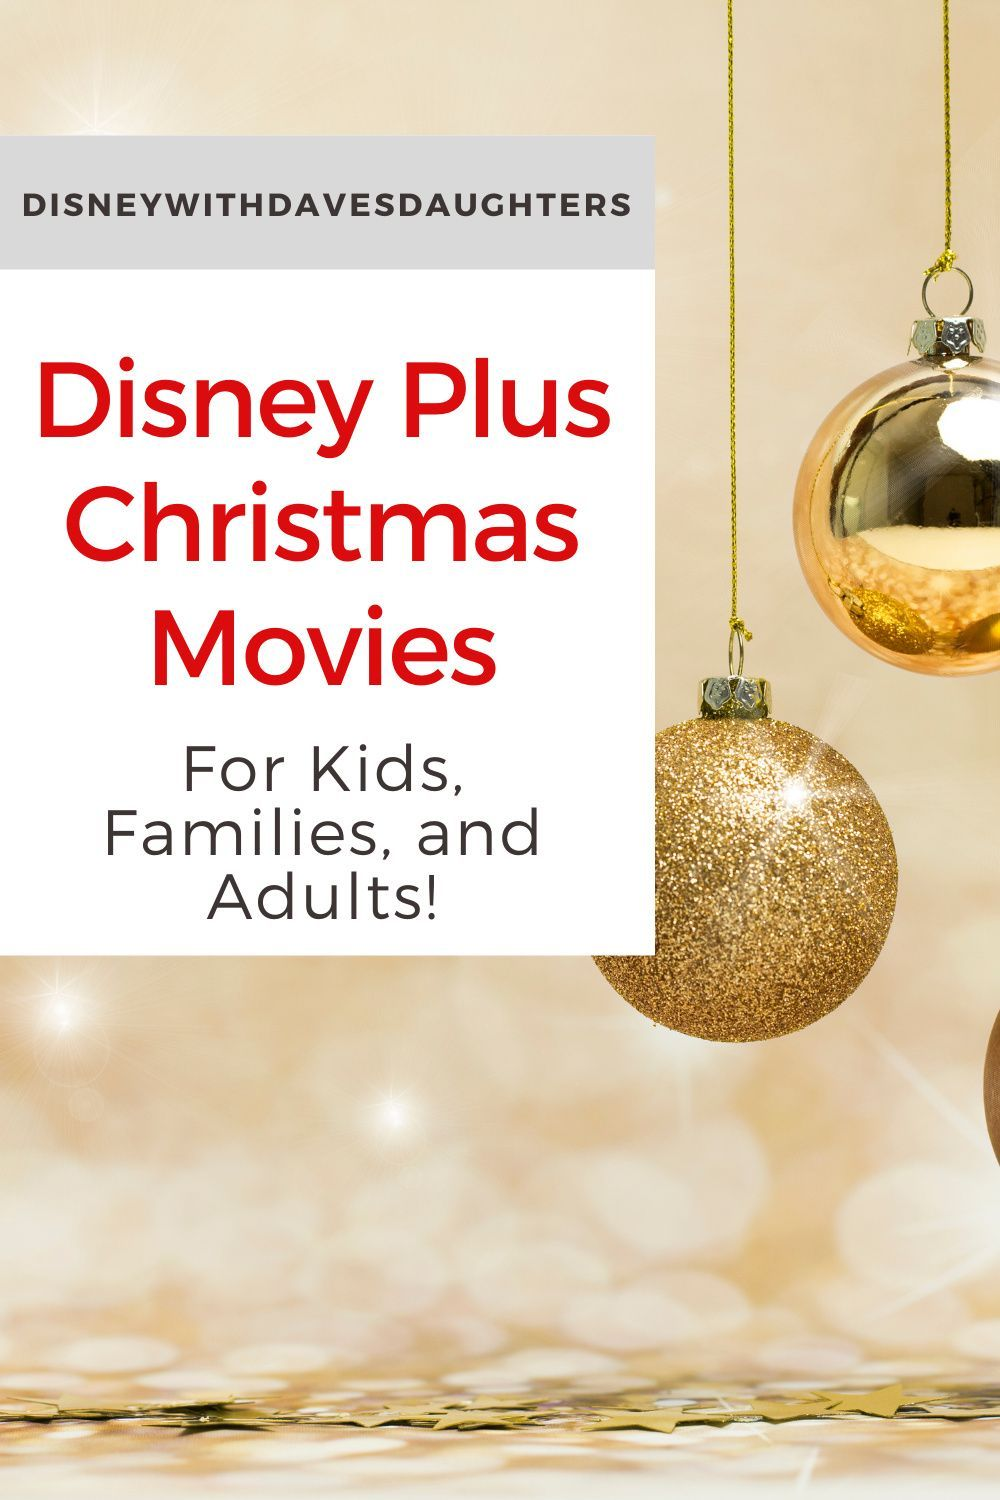 The Best Disney Christmas Movies On Disney Plus For Families Kids Grown Ups Disney With D In 2020 Kids Christmas Movies Christmas Movies Disney Christmas Movies